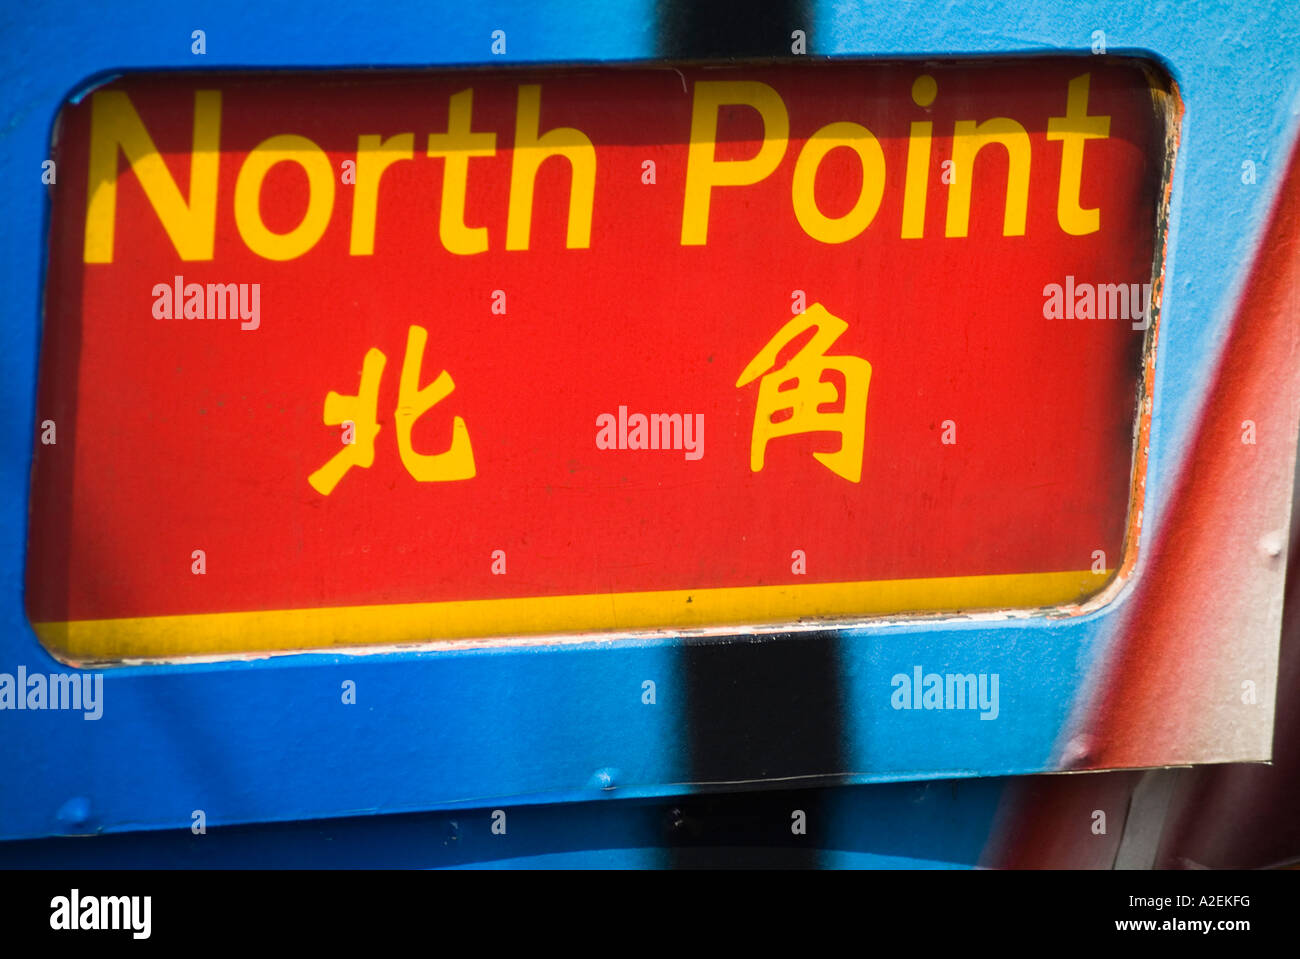 dh  TRAM HONG KONG North Point tram destination sign in English and Chinese calligraphy bhz Stock Photo